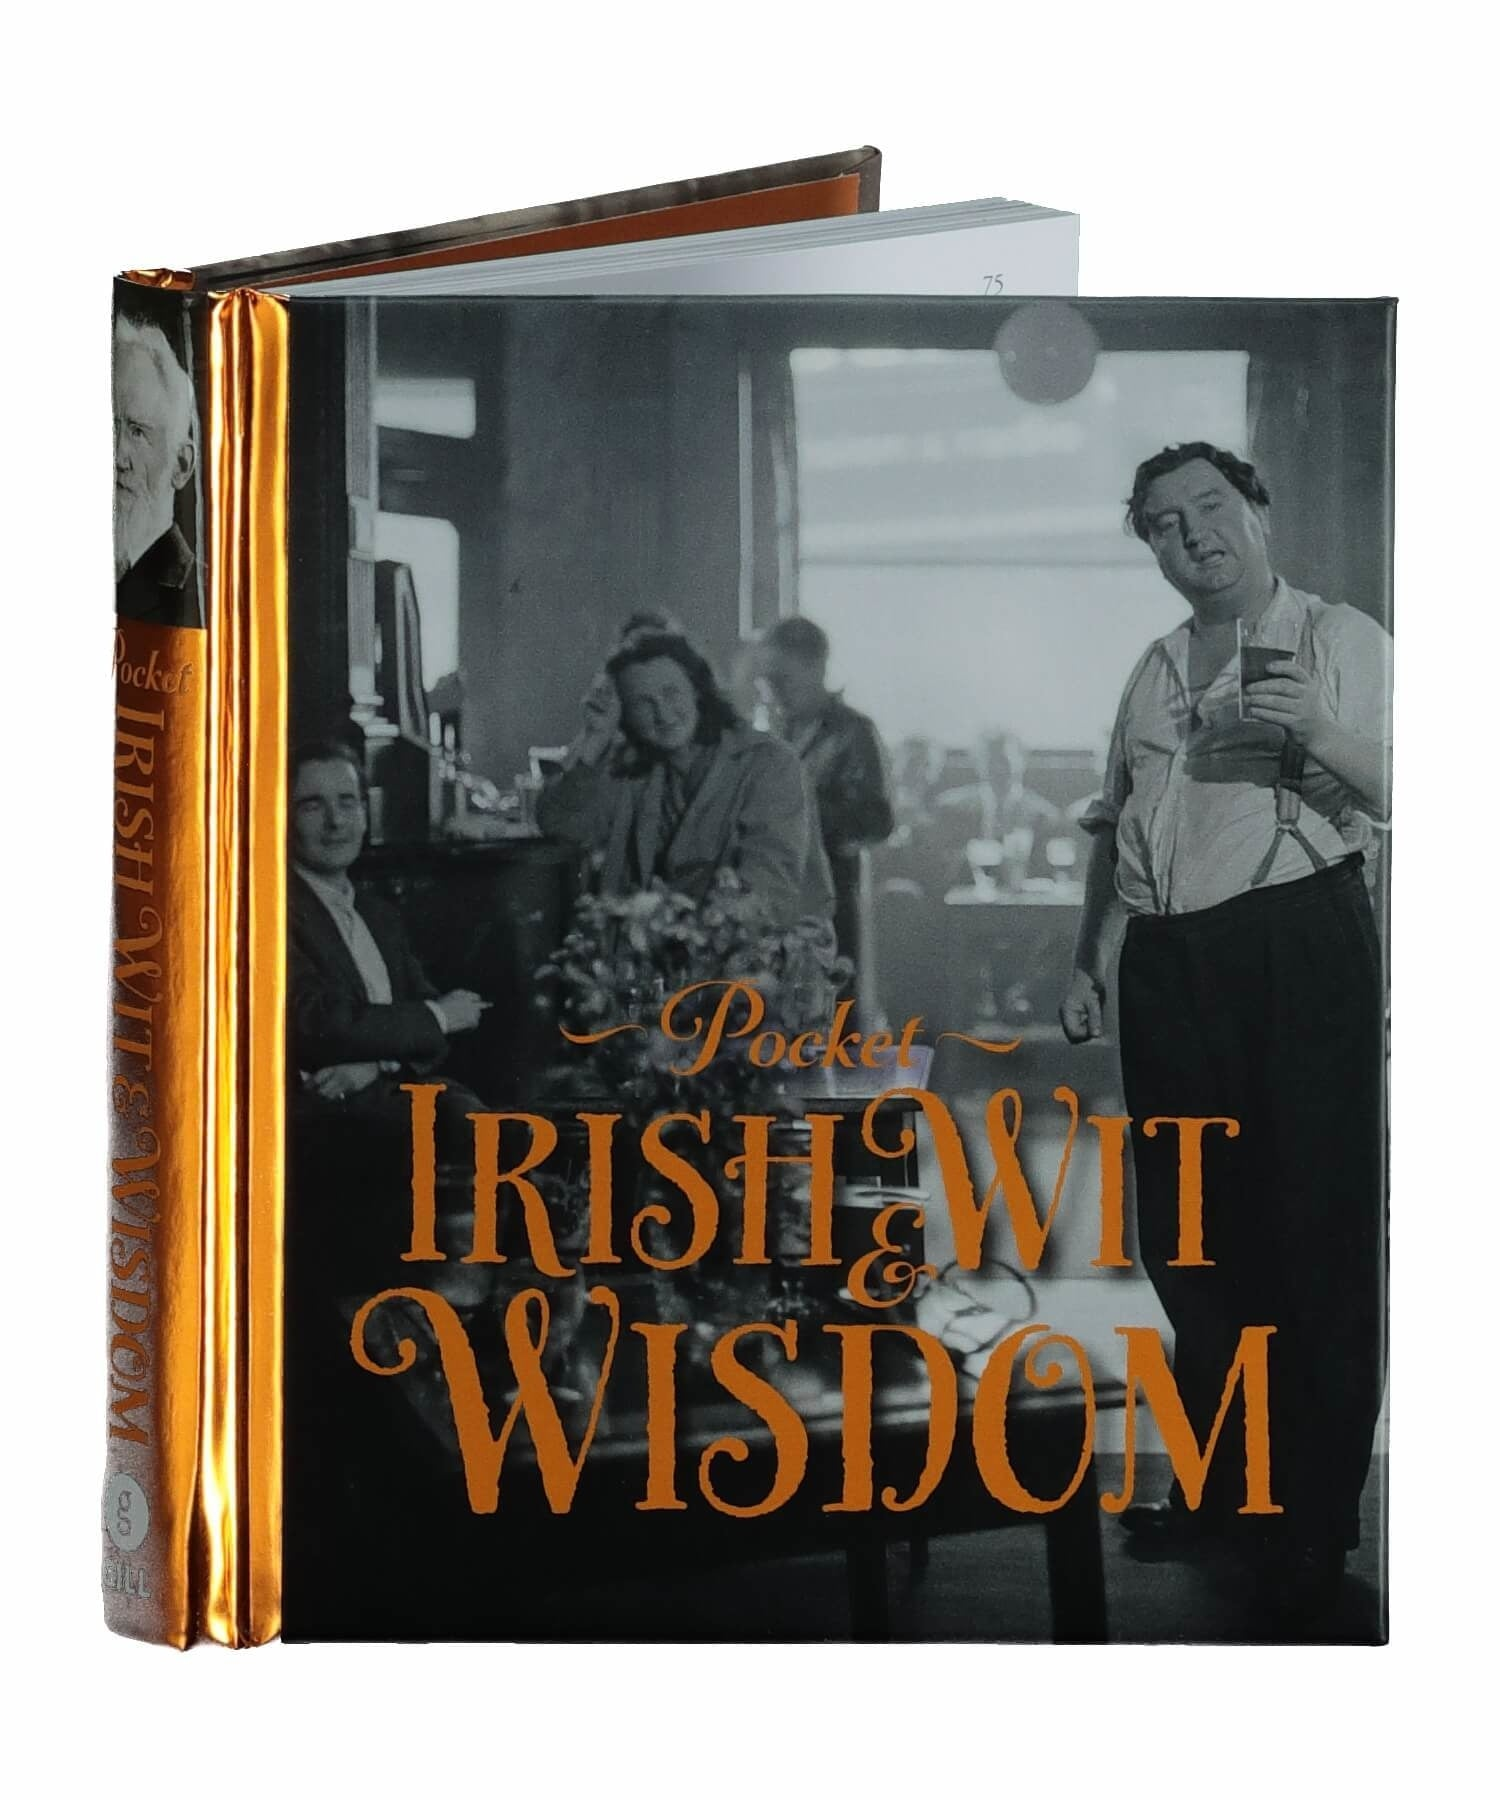 Pocket - Irish Wit & Wisdom - [Gill & MacMillan] - Books & Stationery - Irish Gifts